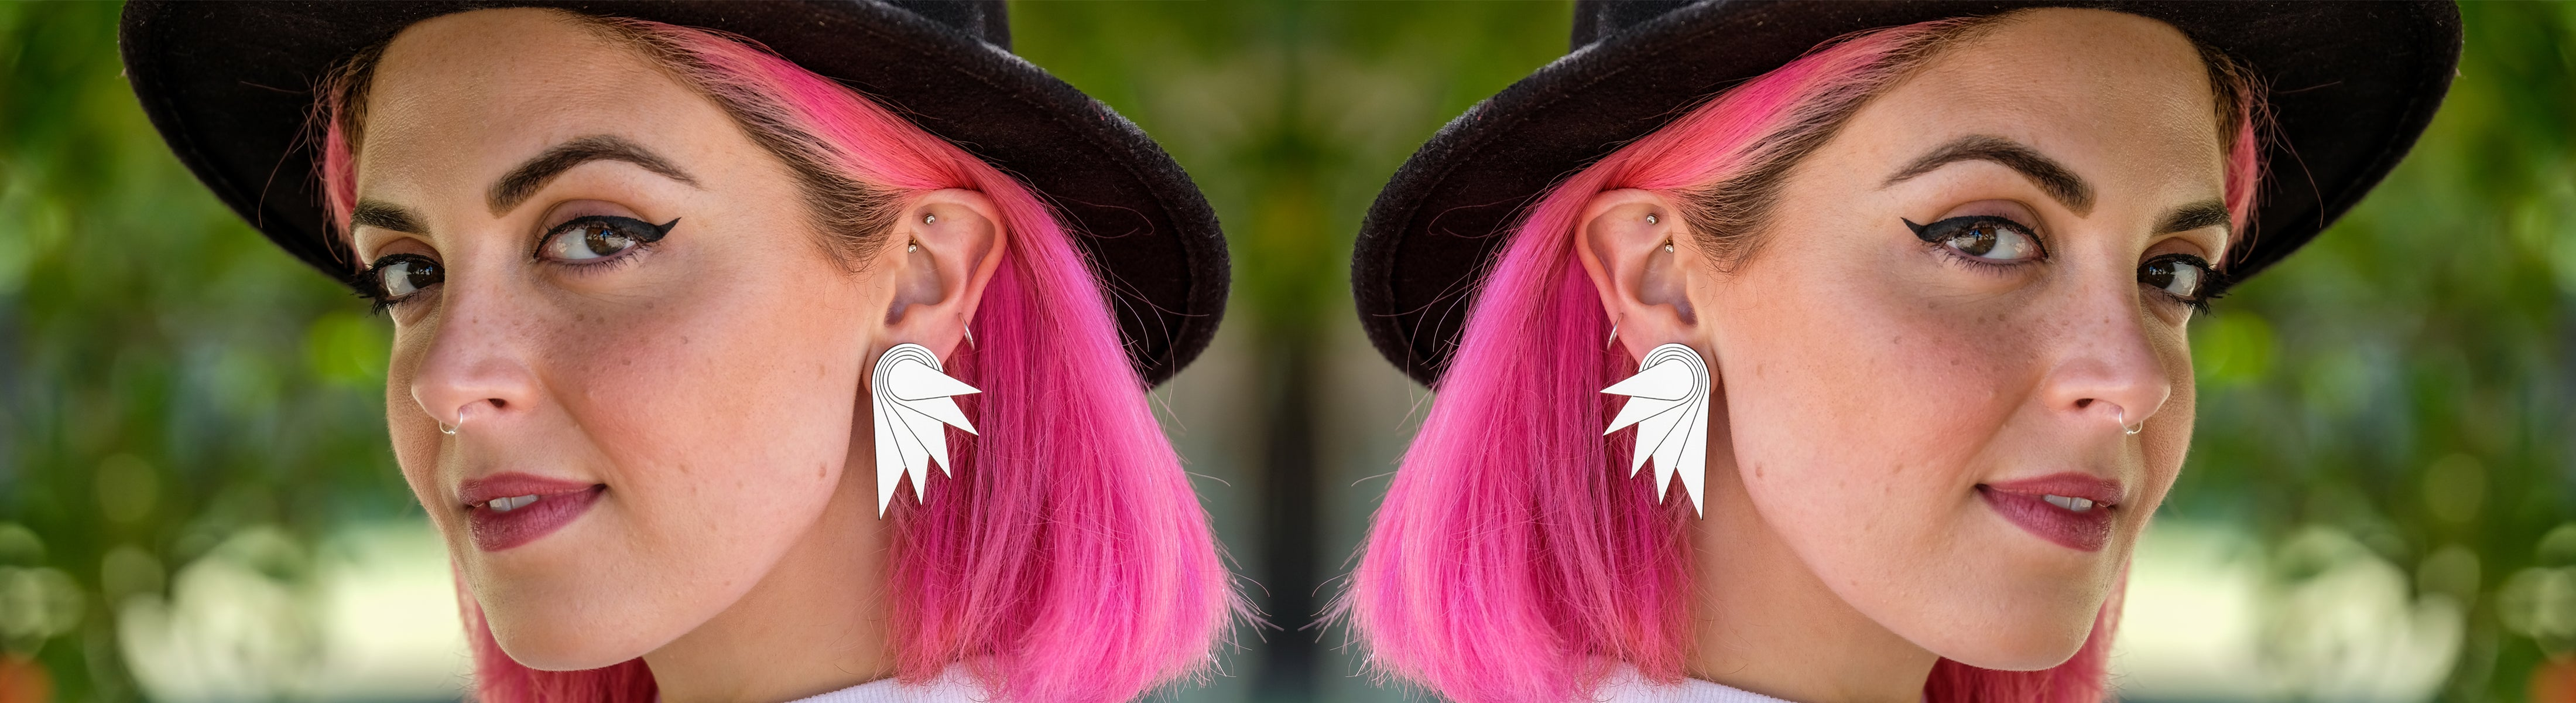 Person with pink hair wearing Maine and Mara statement jewellery Wings clip-on earrings in silver